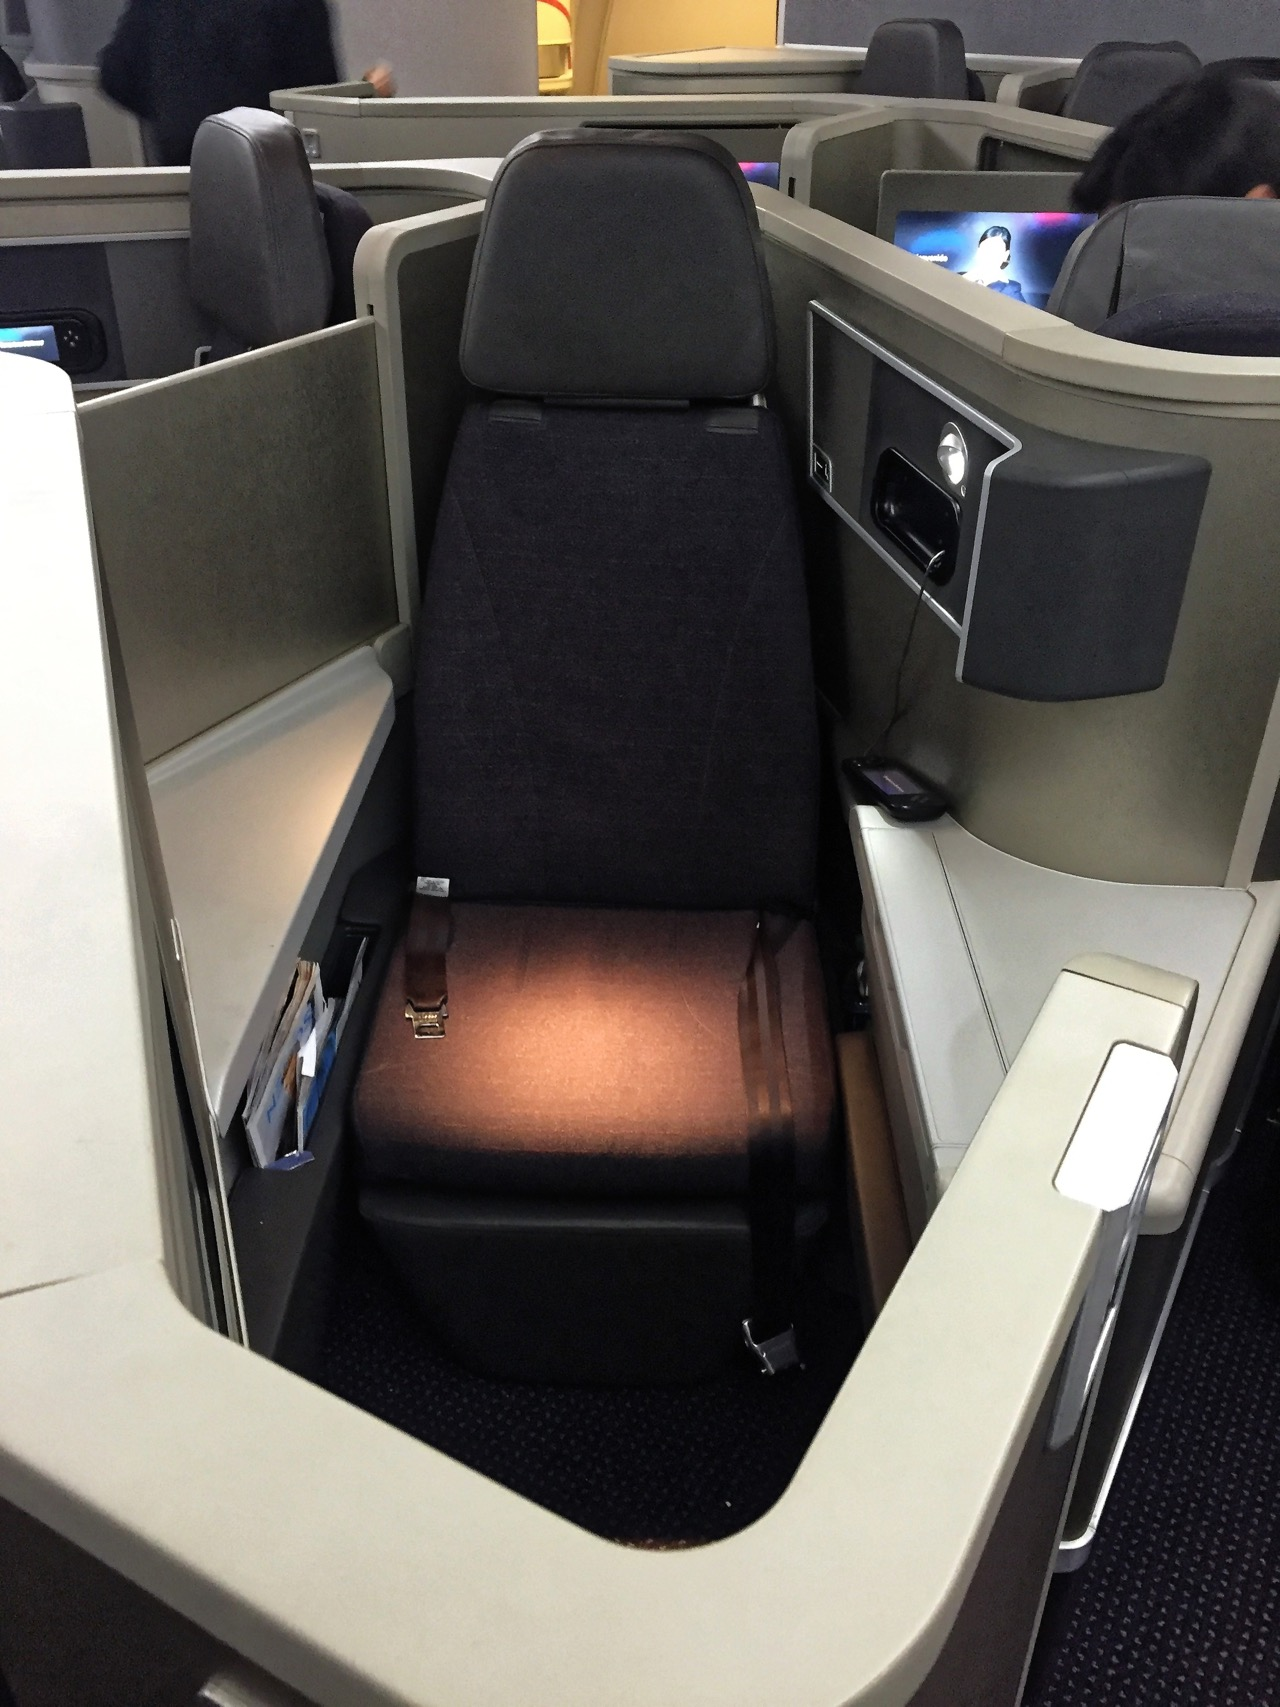 American Airlines AA142 Transatlantic 767 Business Class JFK-LHR